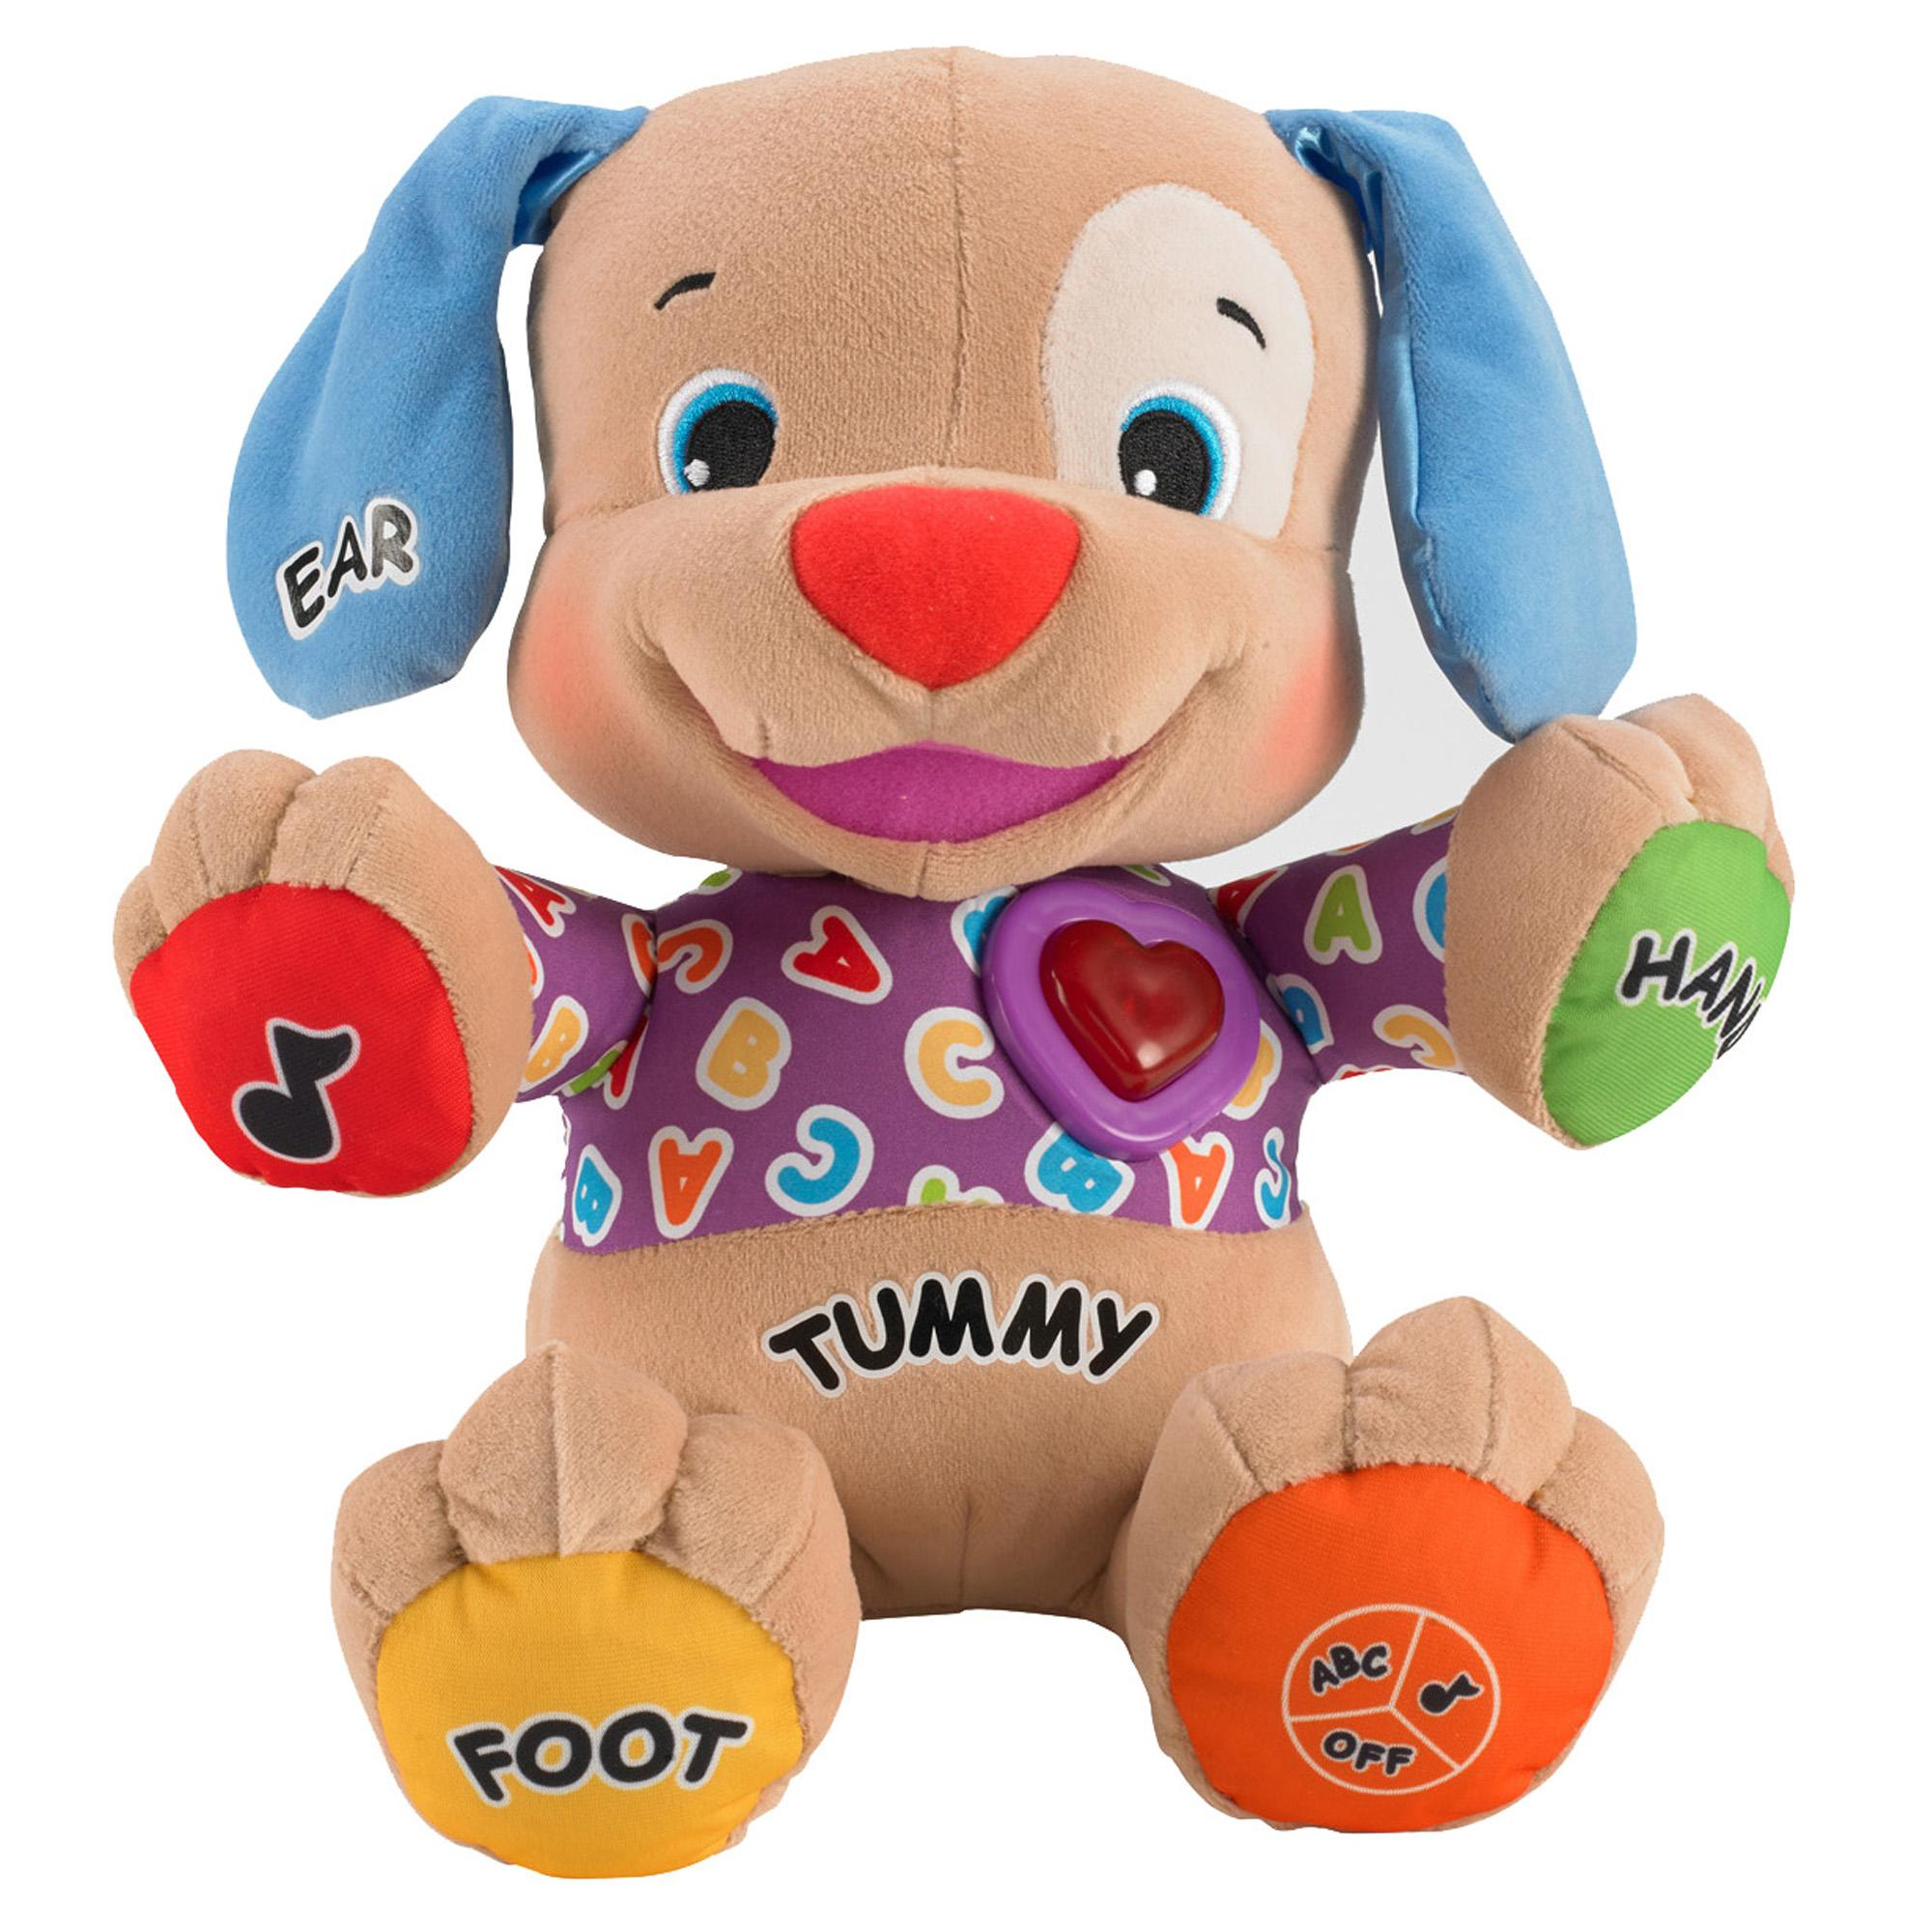 Famed Learn Puppy Youtube Learn Puppy Song Lyrics Laugh Laugh Learn Love To Play Puppy Laugh baby Laugh And Learn Puppy